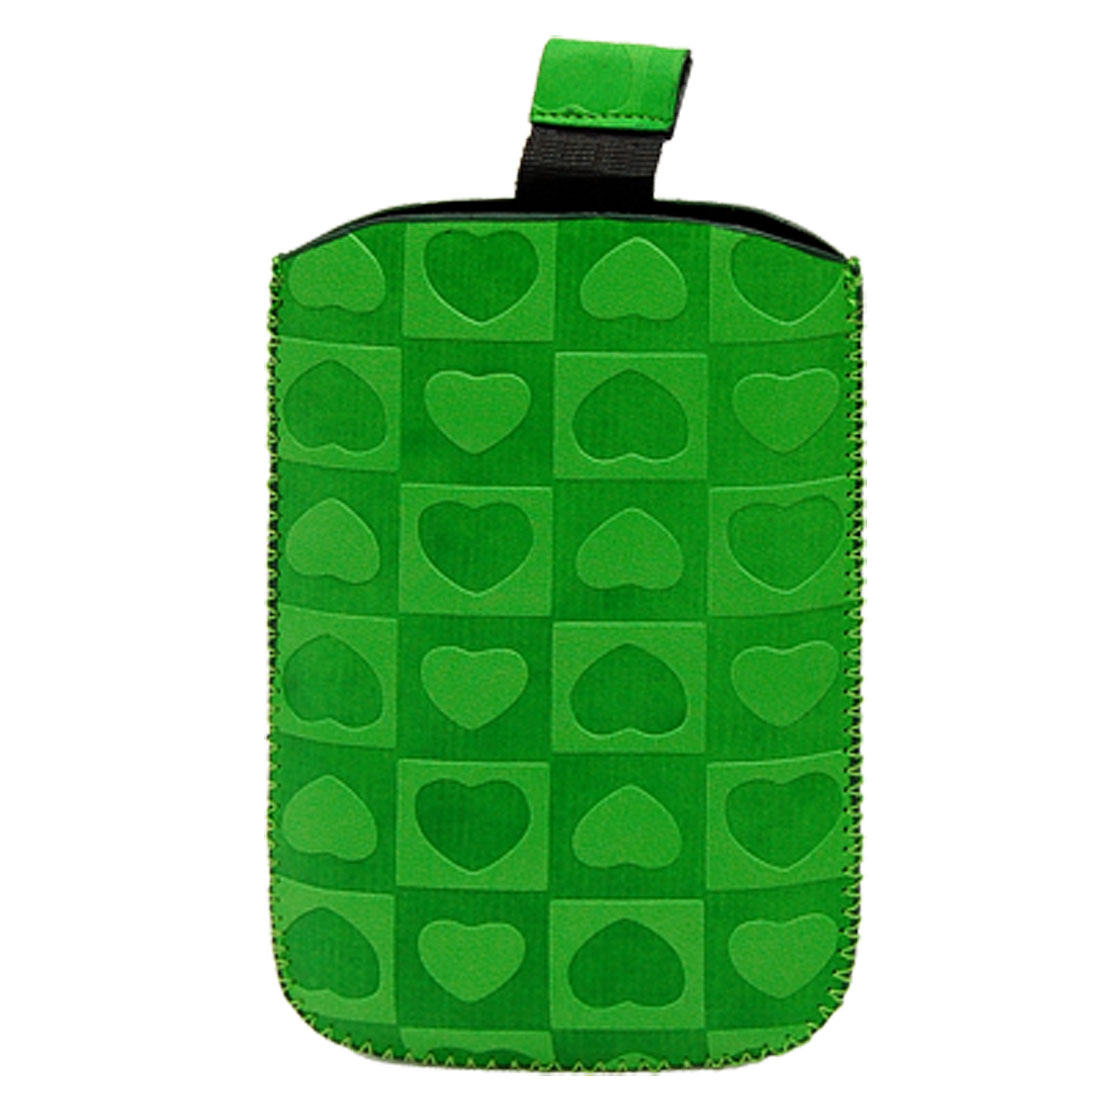 Green Leather Sleeve Case Cover Pouch for Apple iPhone 3G